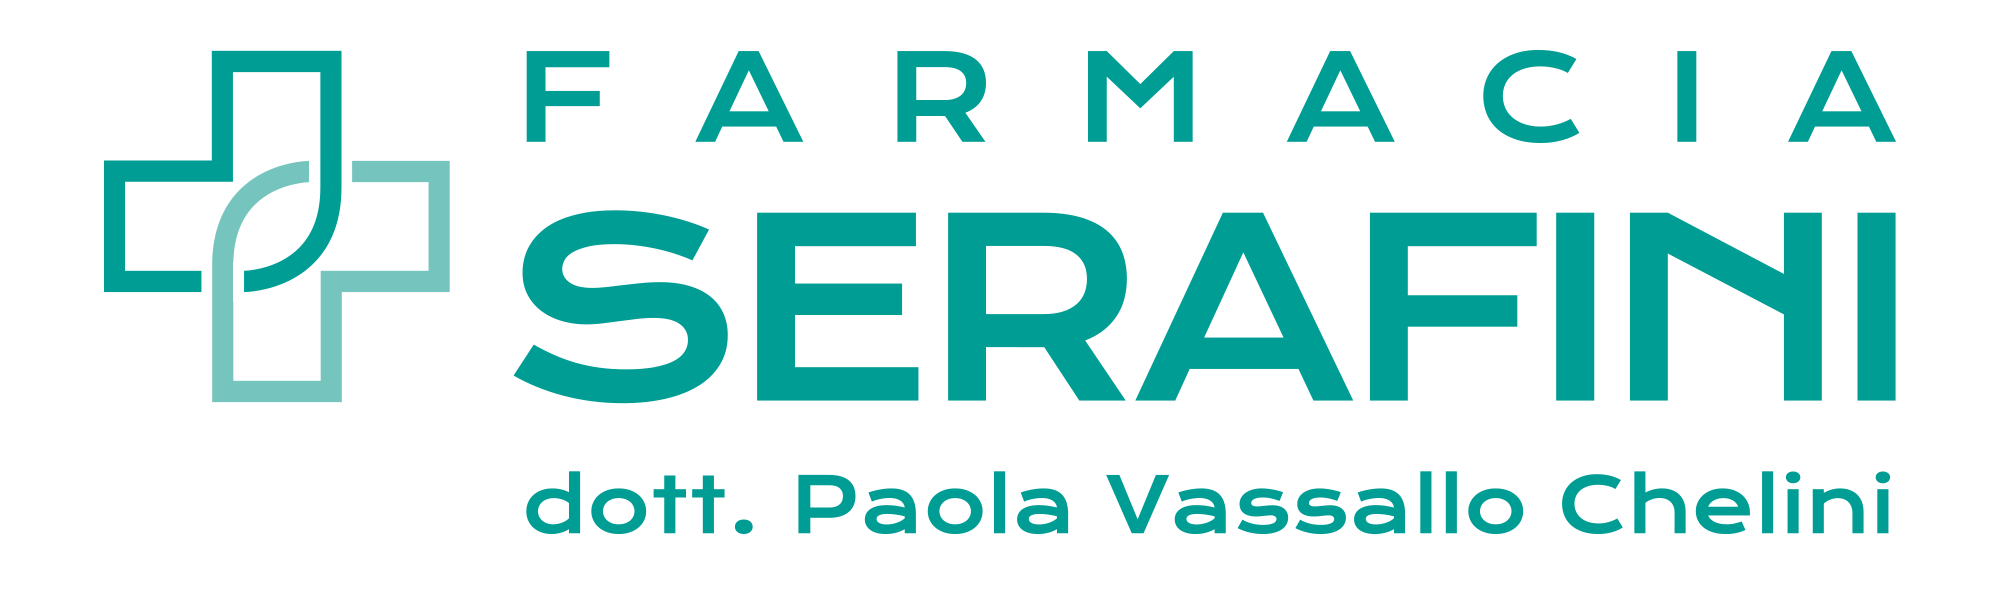 LOGO - Farmacia - Serafini